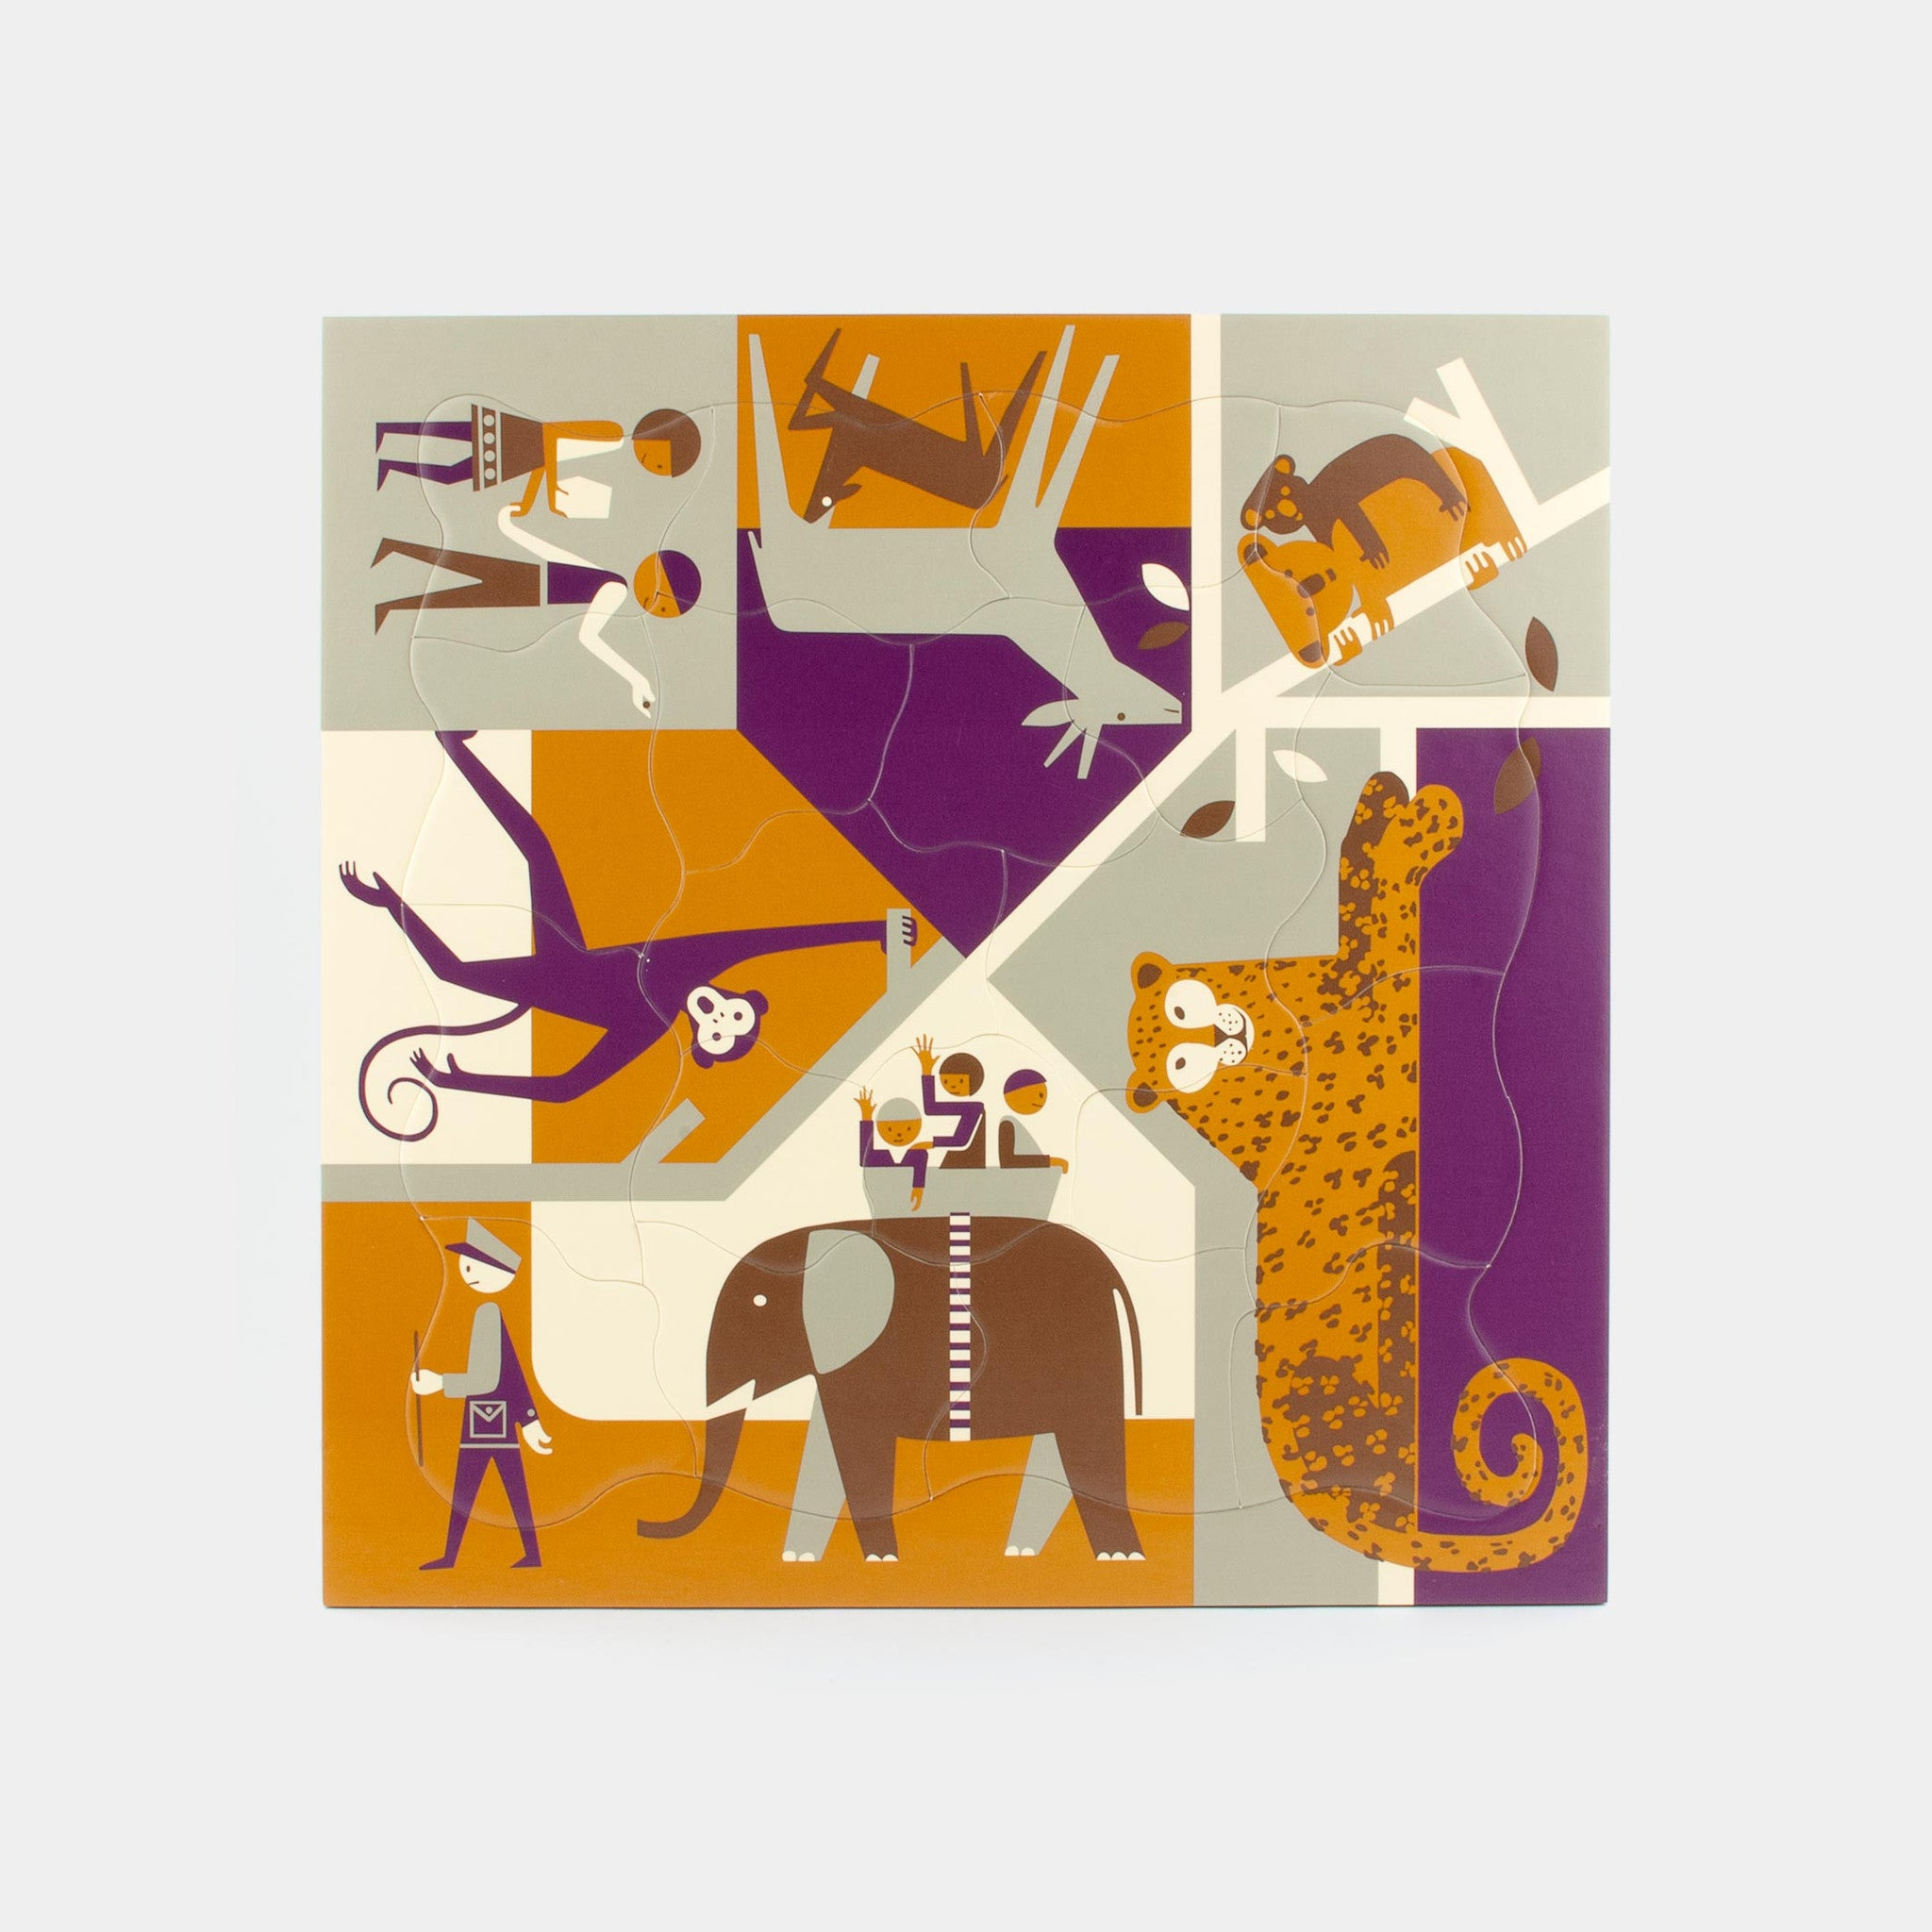 Multi-view Zoo puzzle Puzzles from 1964 by designer Fredun Shapur